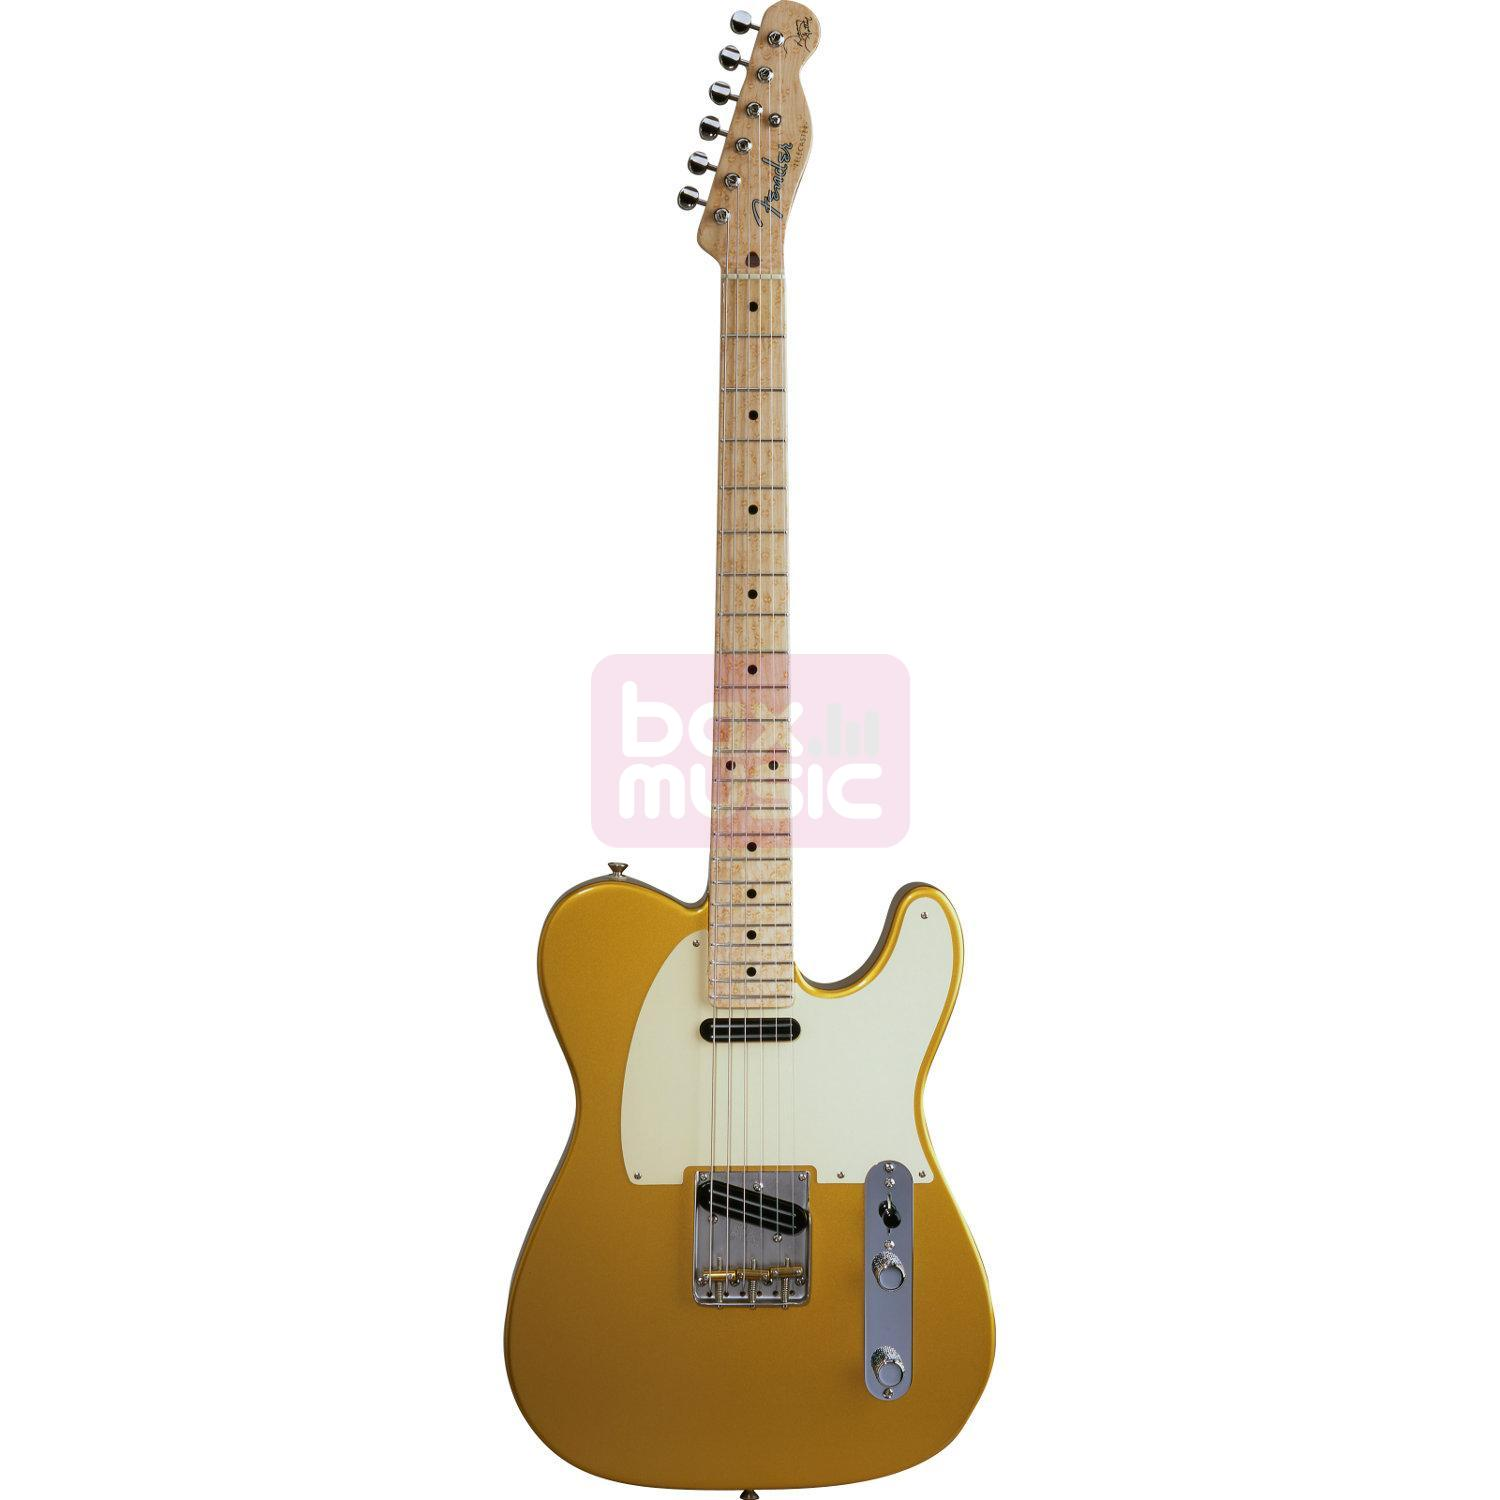 Fender Custom Shop Danny Gatton Signature Telecaster Frost Gold